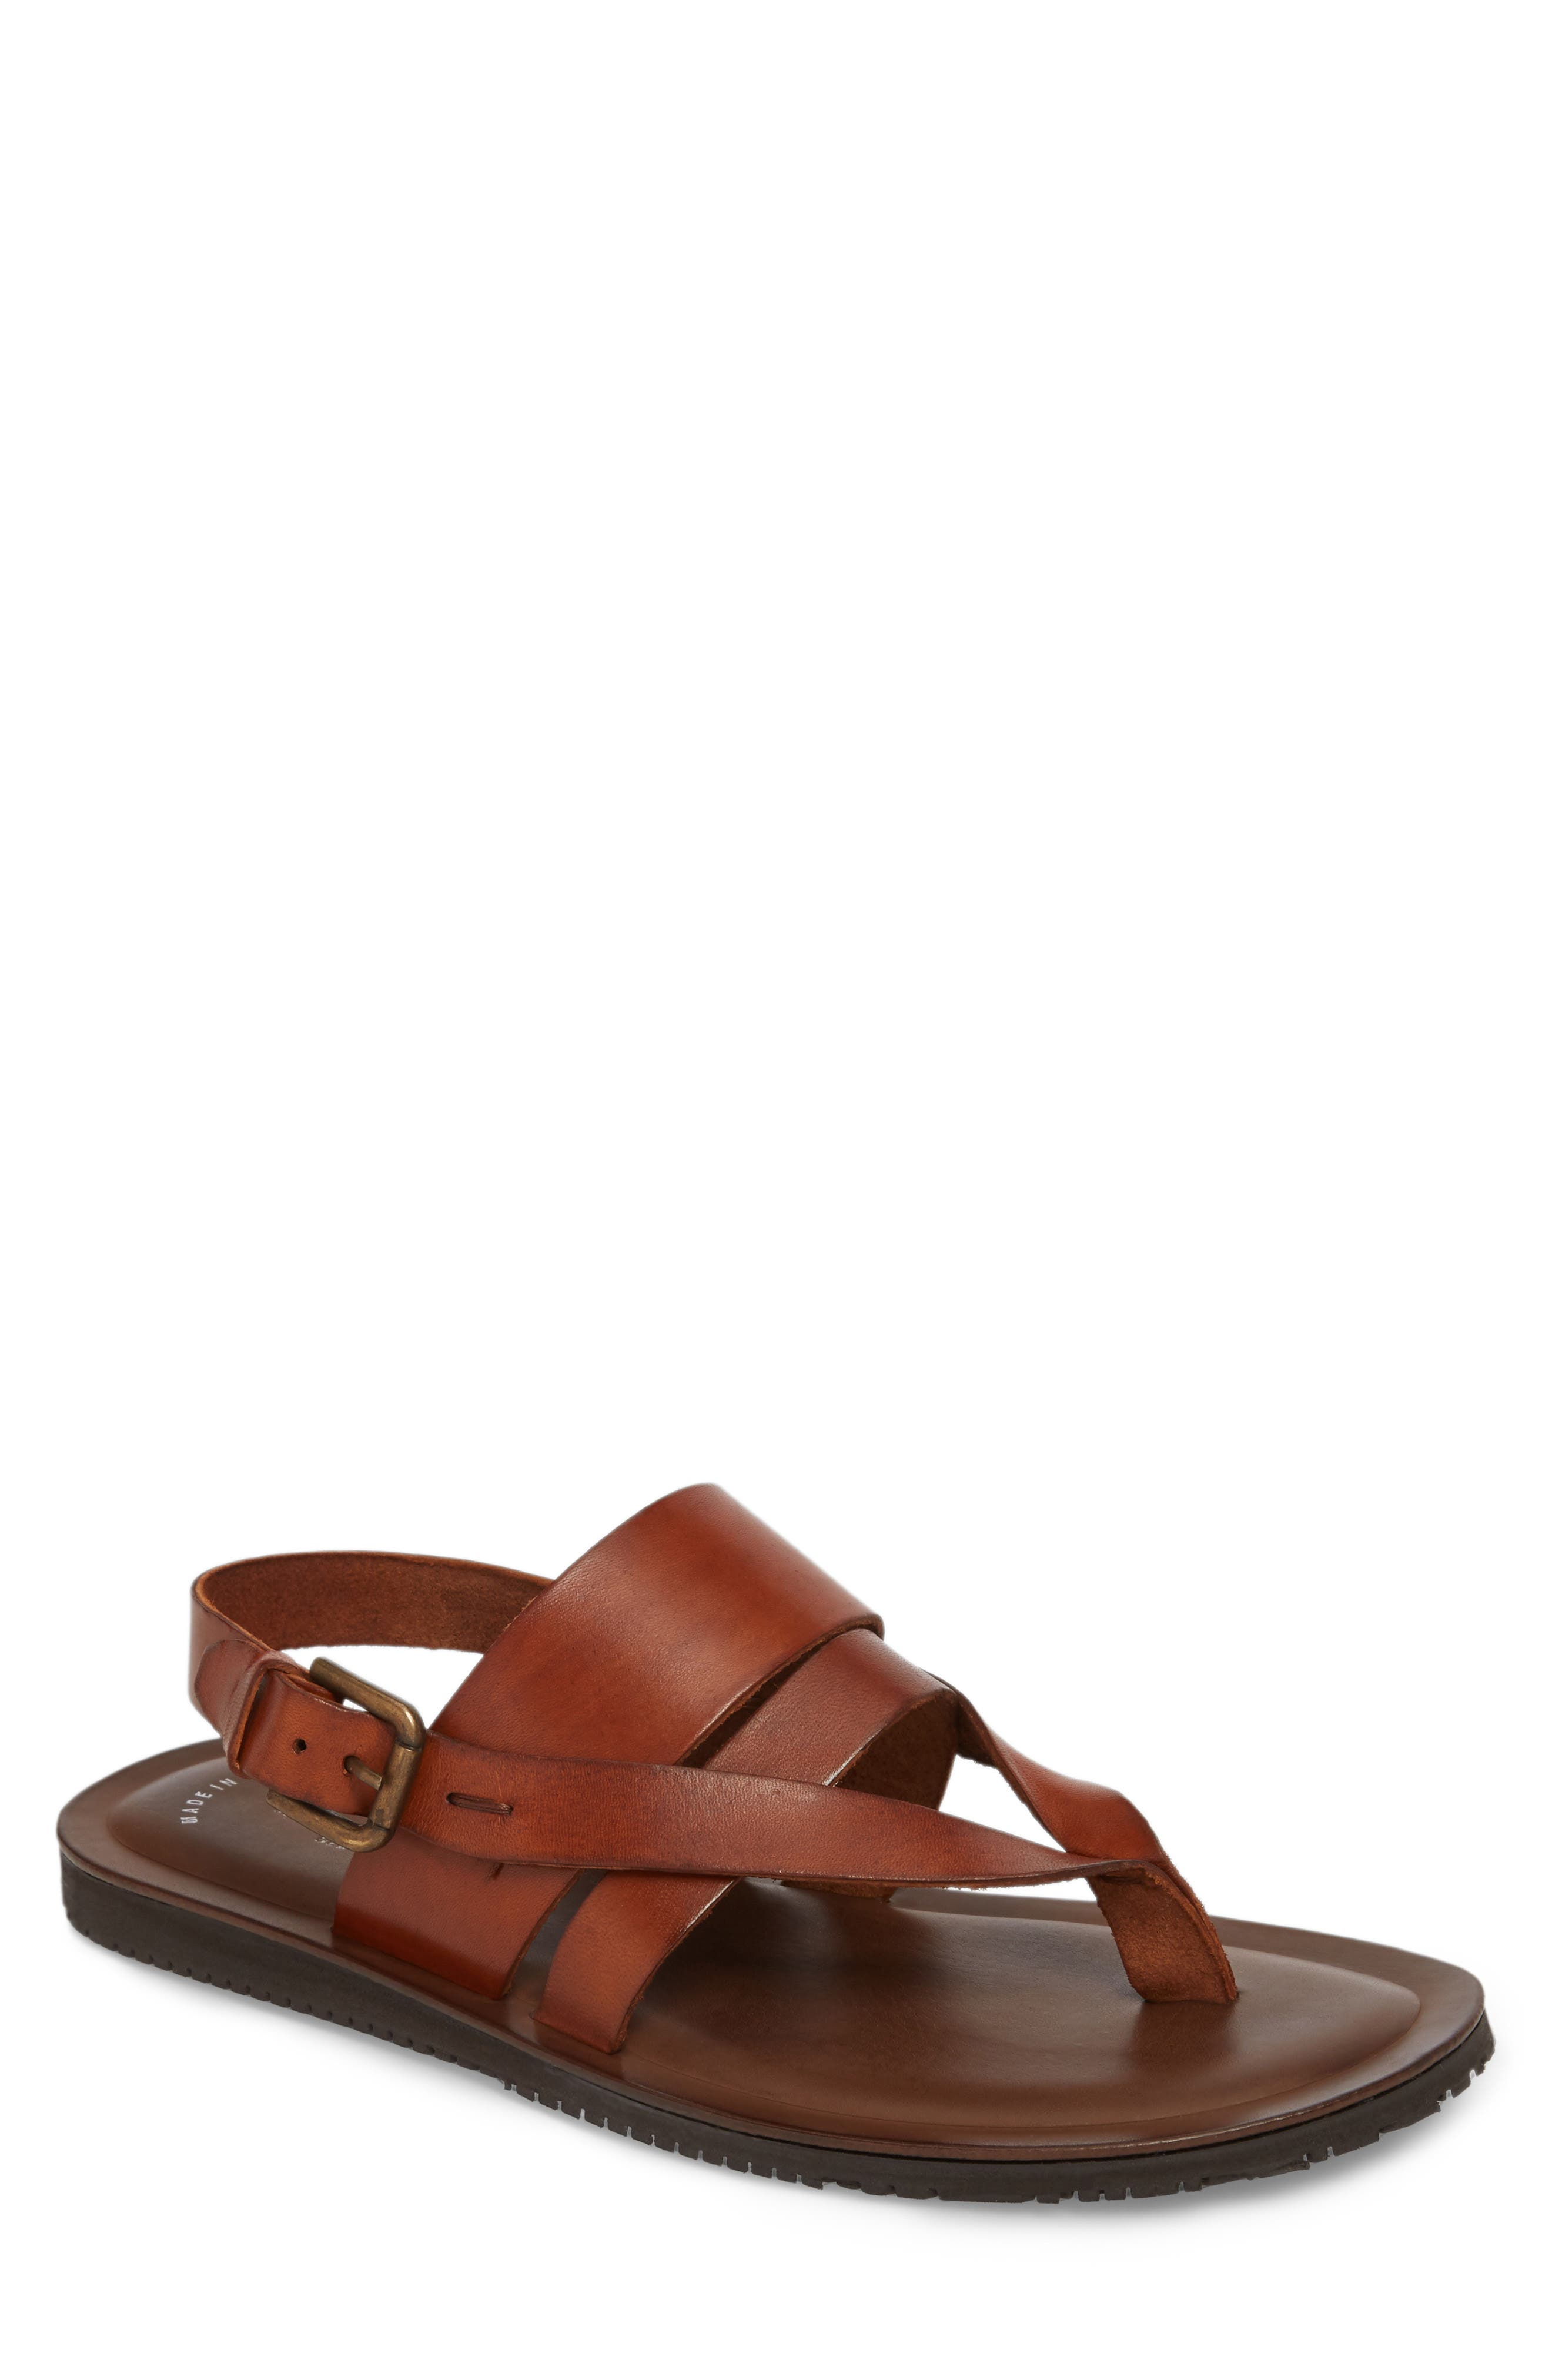 KENNETH COLE NEW YORK 'Reel-Ist' Sandal, Main, color, COGNAC LEATHER